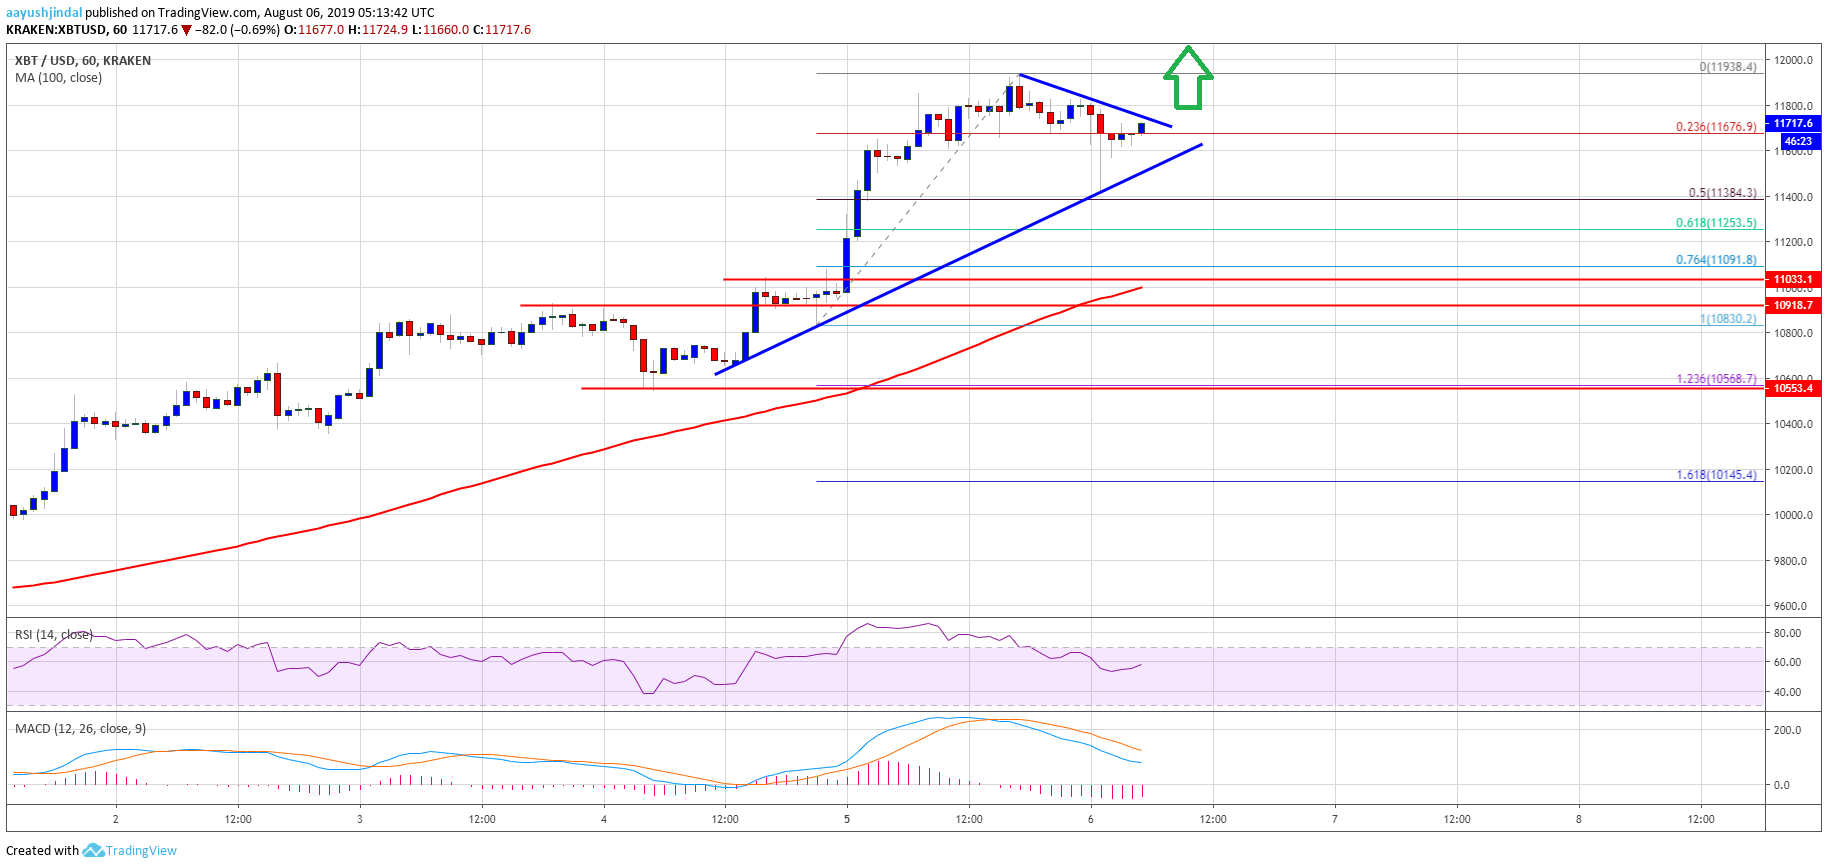 Bitcoin Price Analysis (BTC/USD) Chart